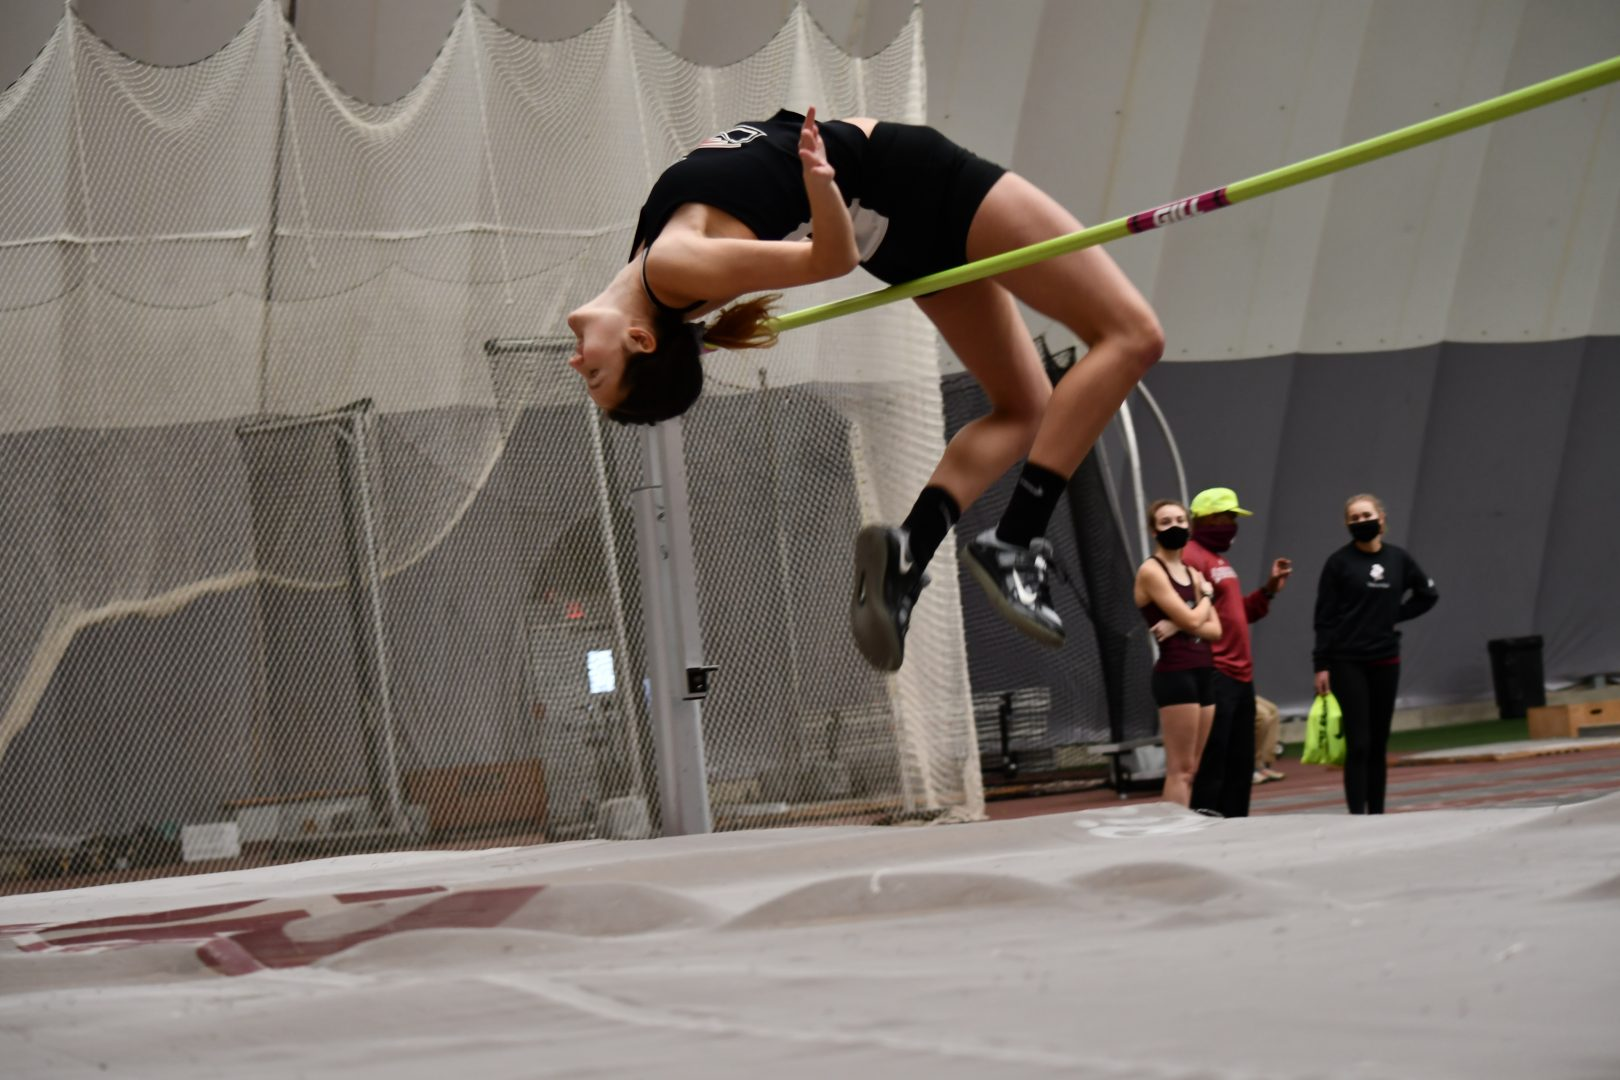 Senior jumper Taylor Strnad attempts a high jump of 1.70 meters which is a try at the UIndy women's high jump indoor school record. Strnad won the event for the Greyhound invite with a jump of 1.65 meters. Senior jumper Chandler Martin got second with a 1.85m jump.